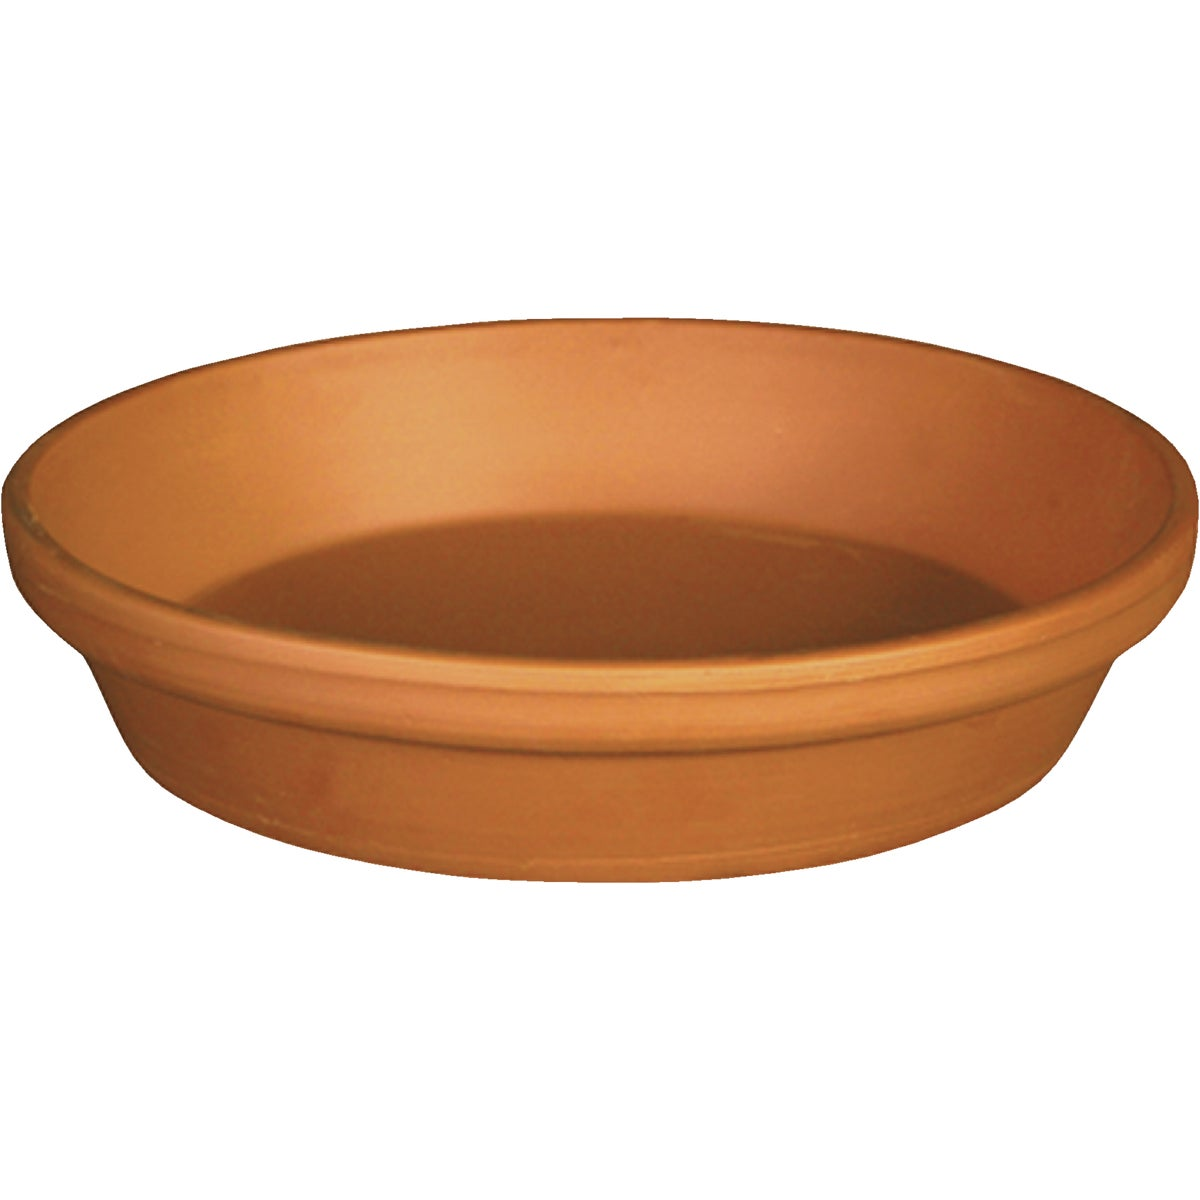 "10"" TC CLAY SAUCER - 87250PZ by Deroma"